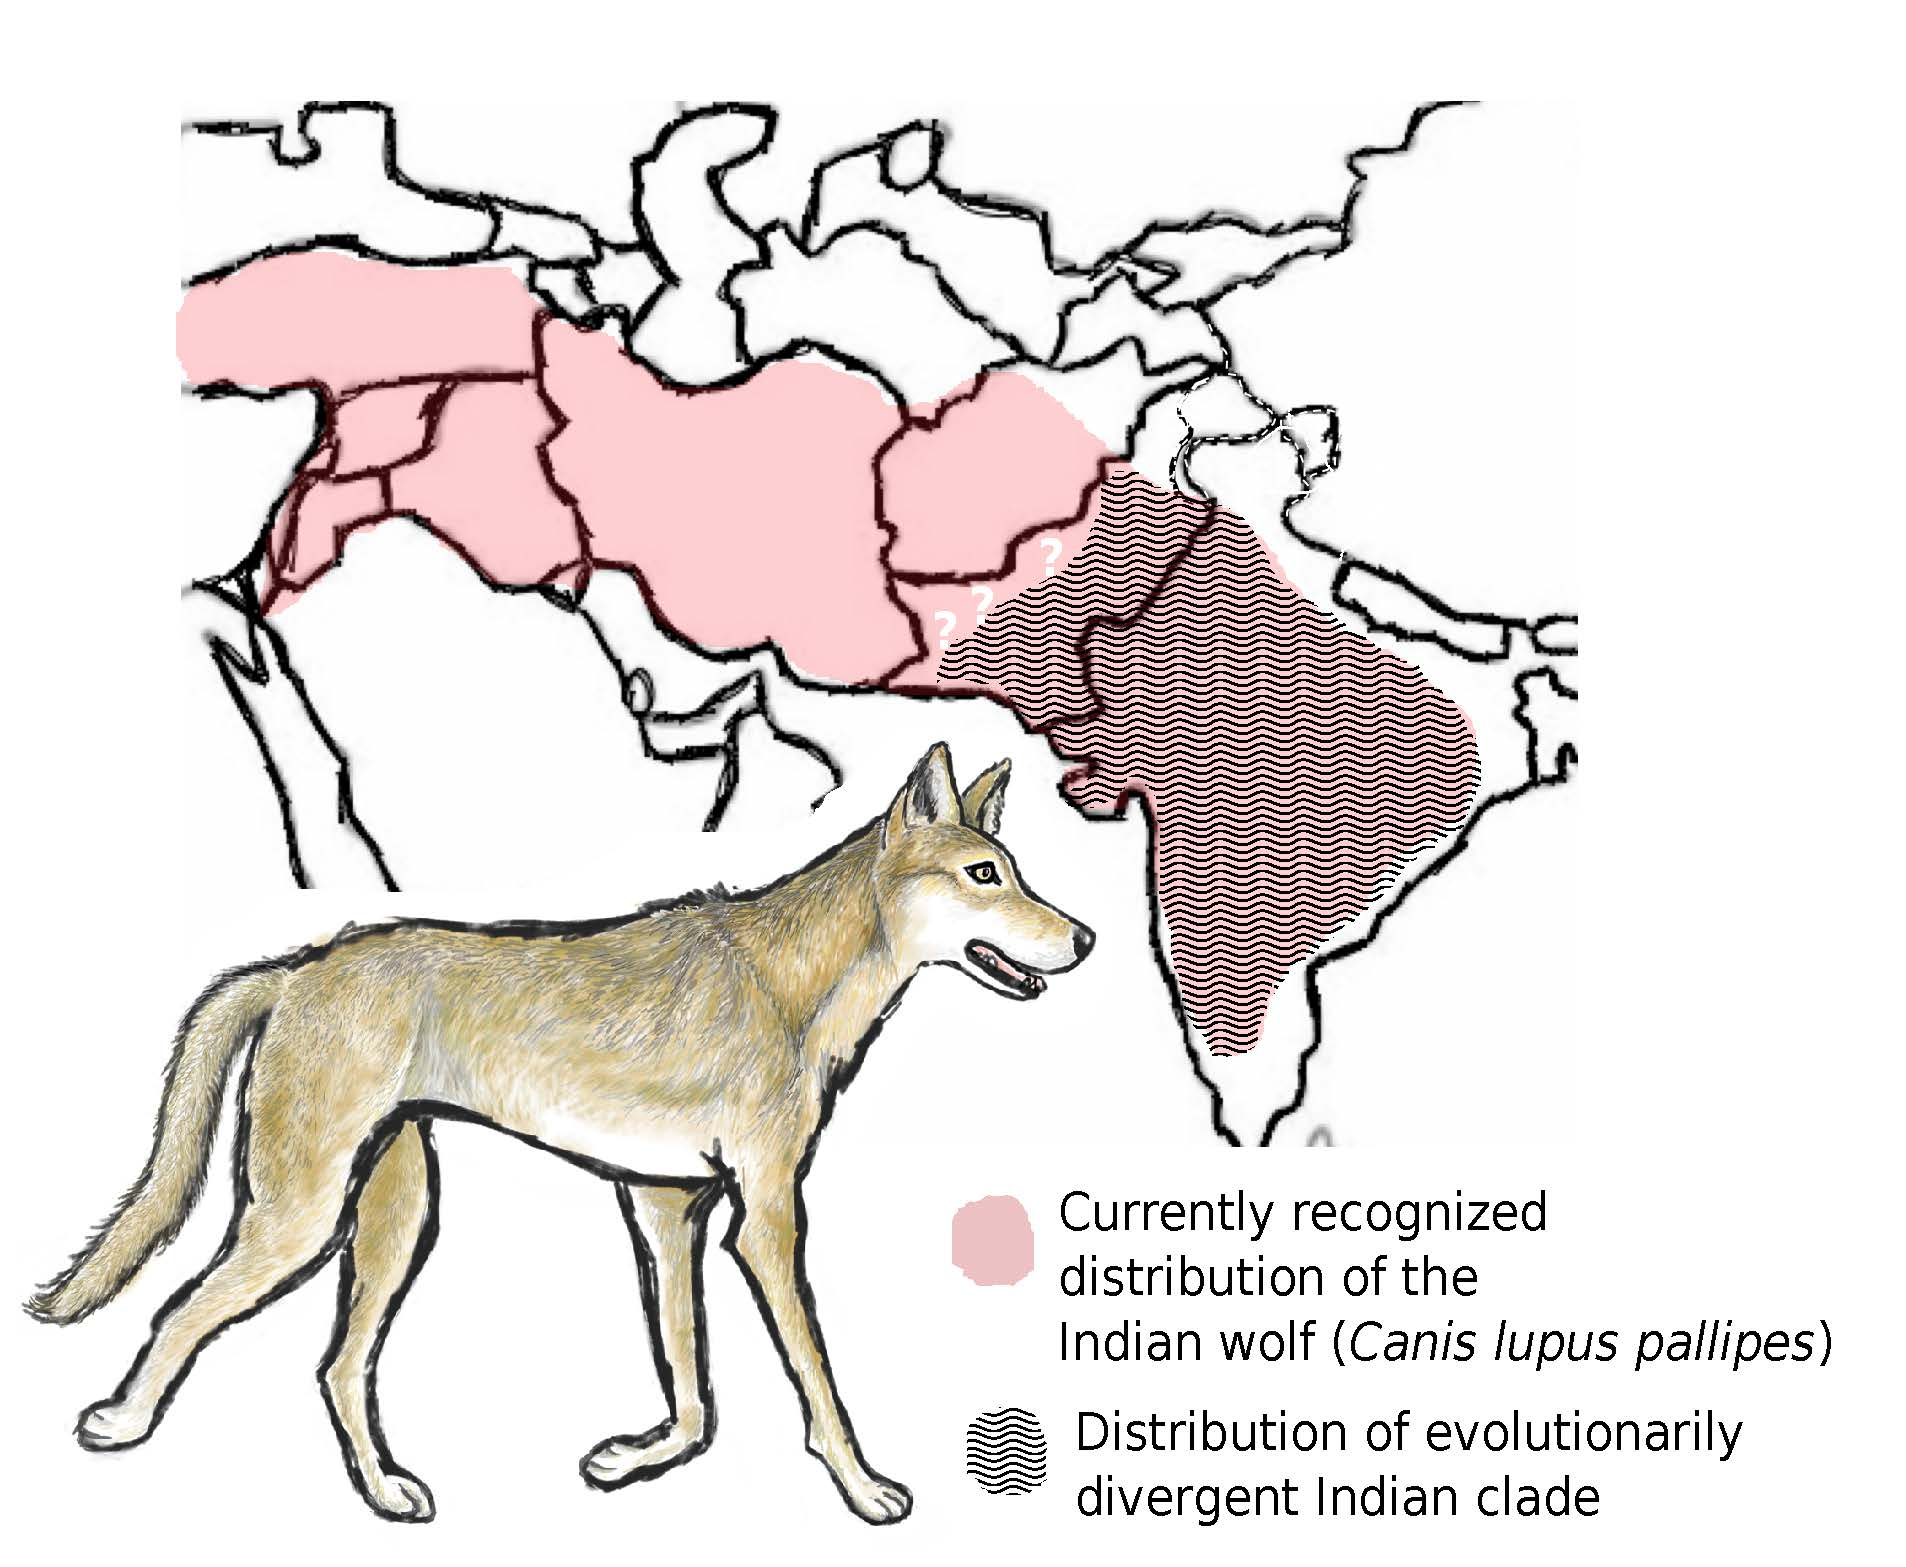 Illustration of Indian wolf with a pink and white map showing its recognized range versus what new scientific evidence indicates is its smaller range.